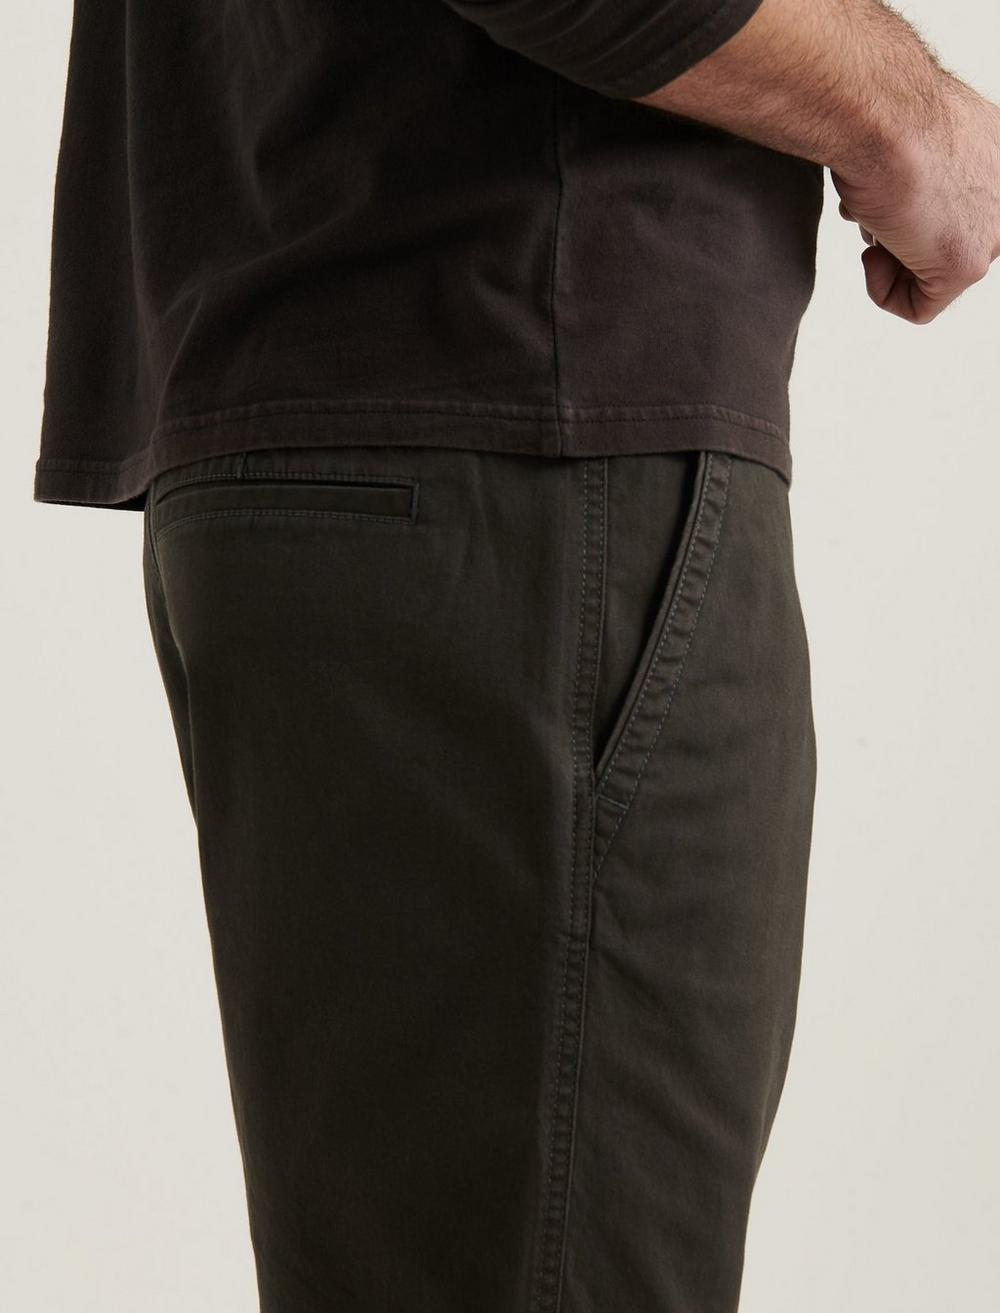 STRETCH TWILL FLAT FRONT SHORT, image 3